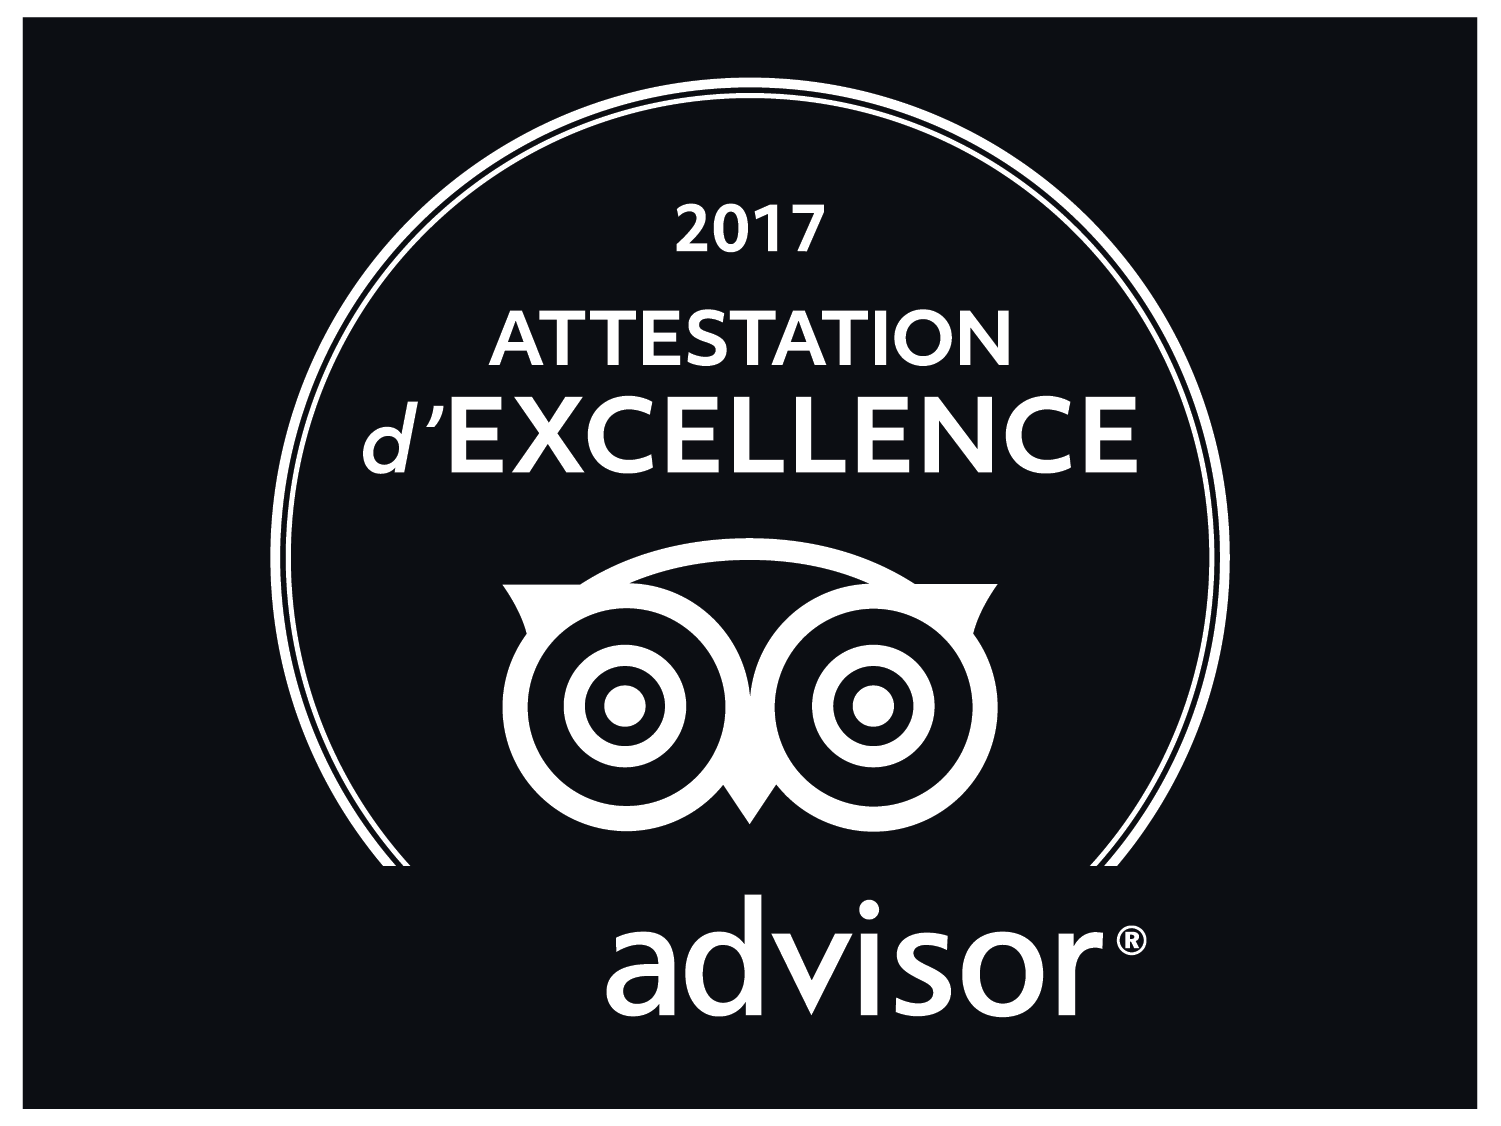 Excellence 2017 keila 2